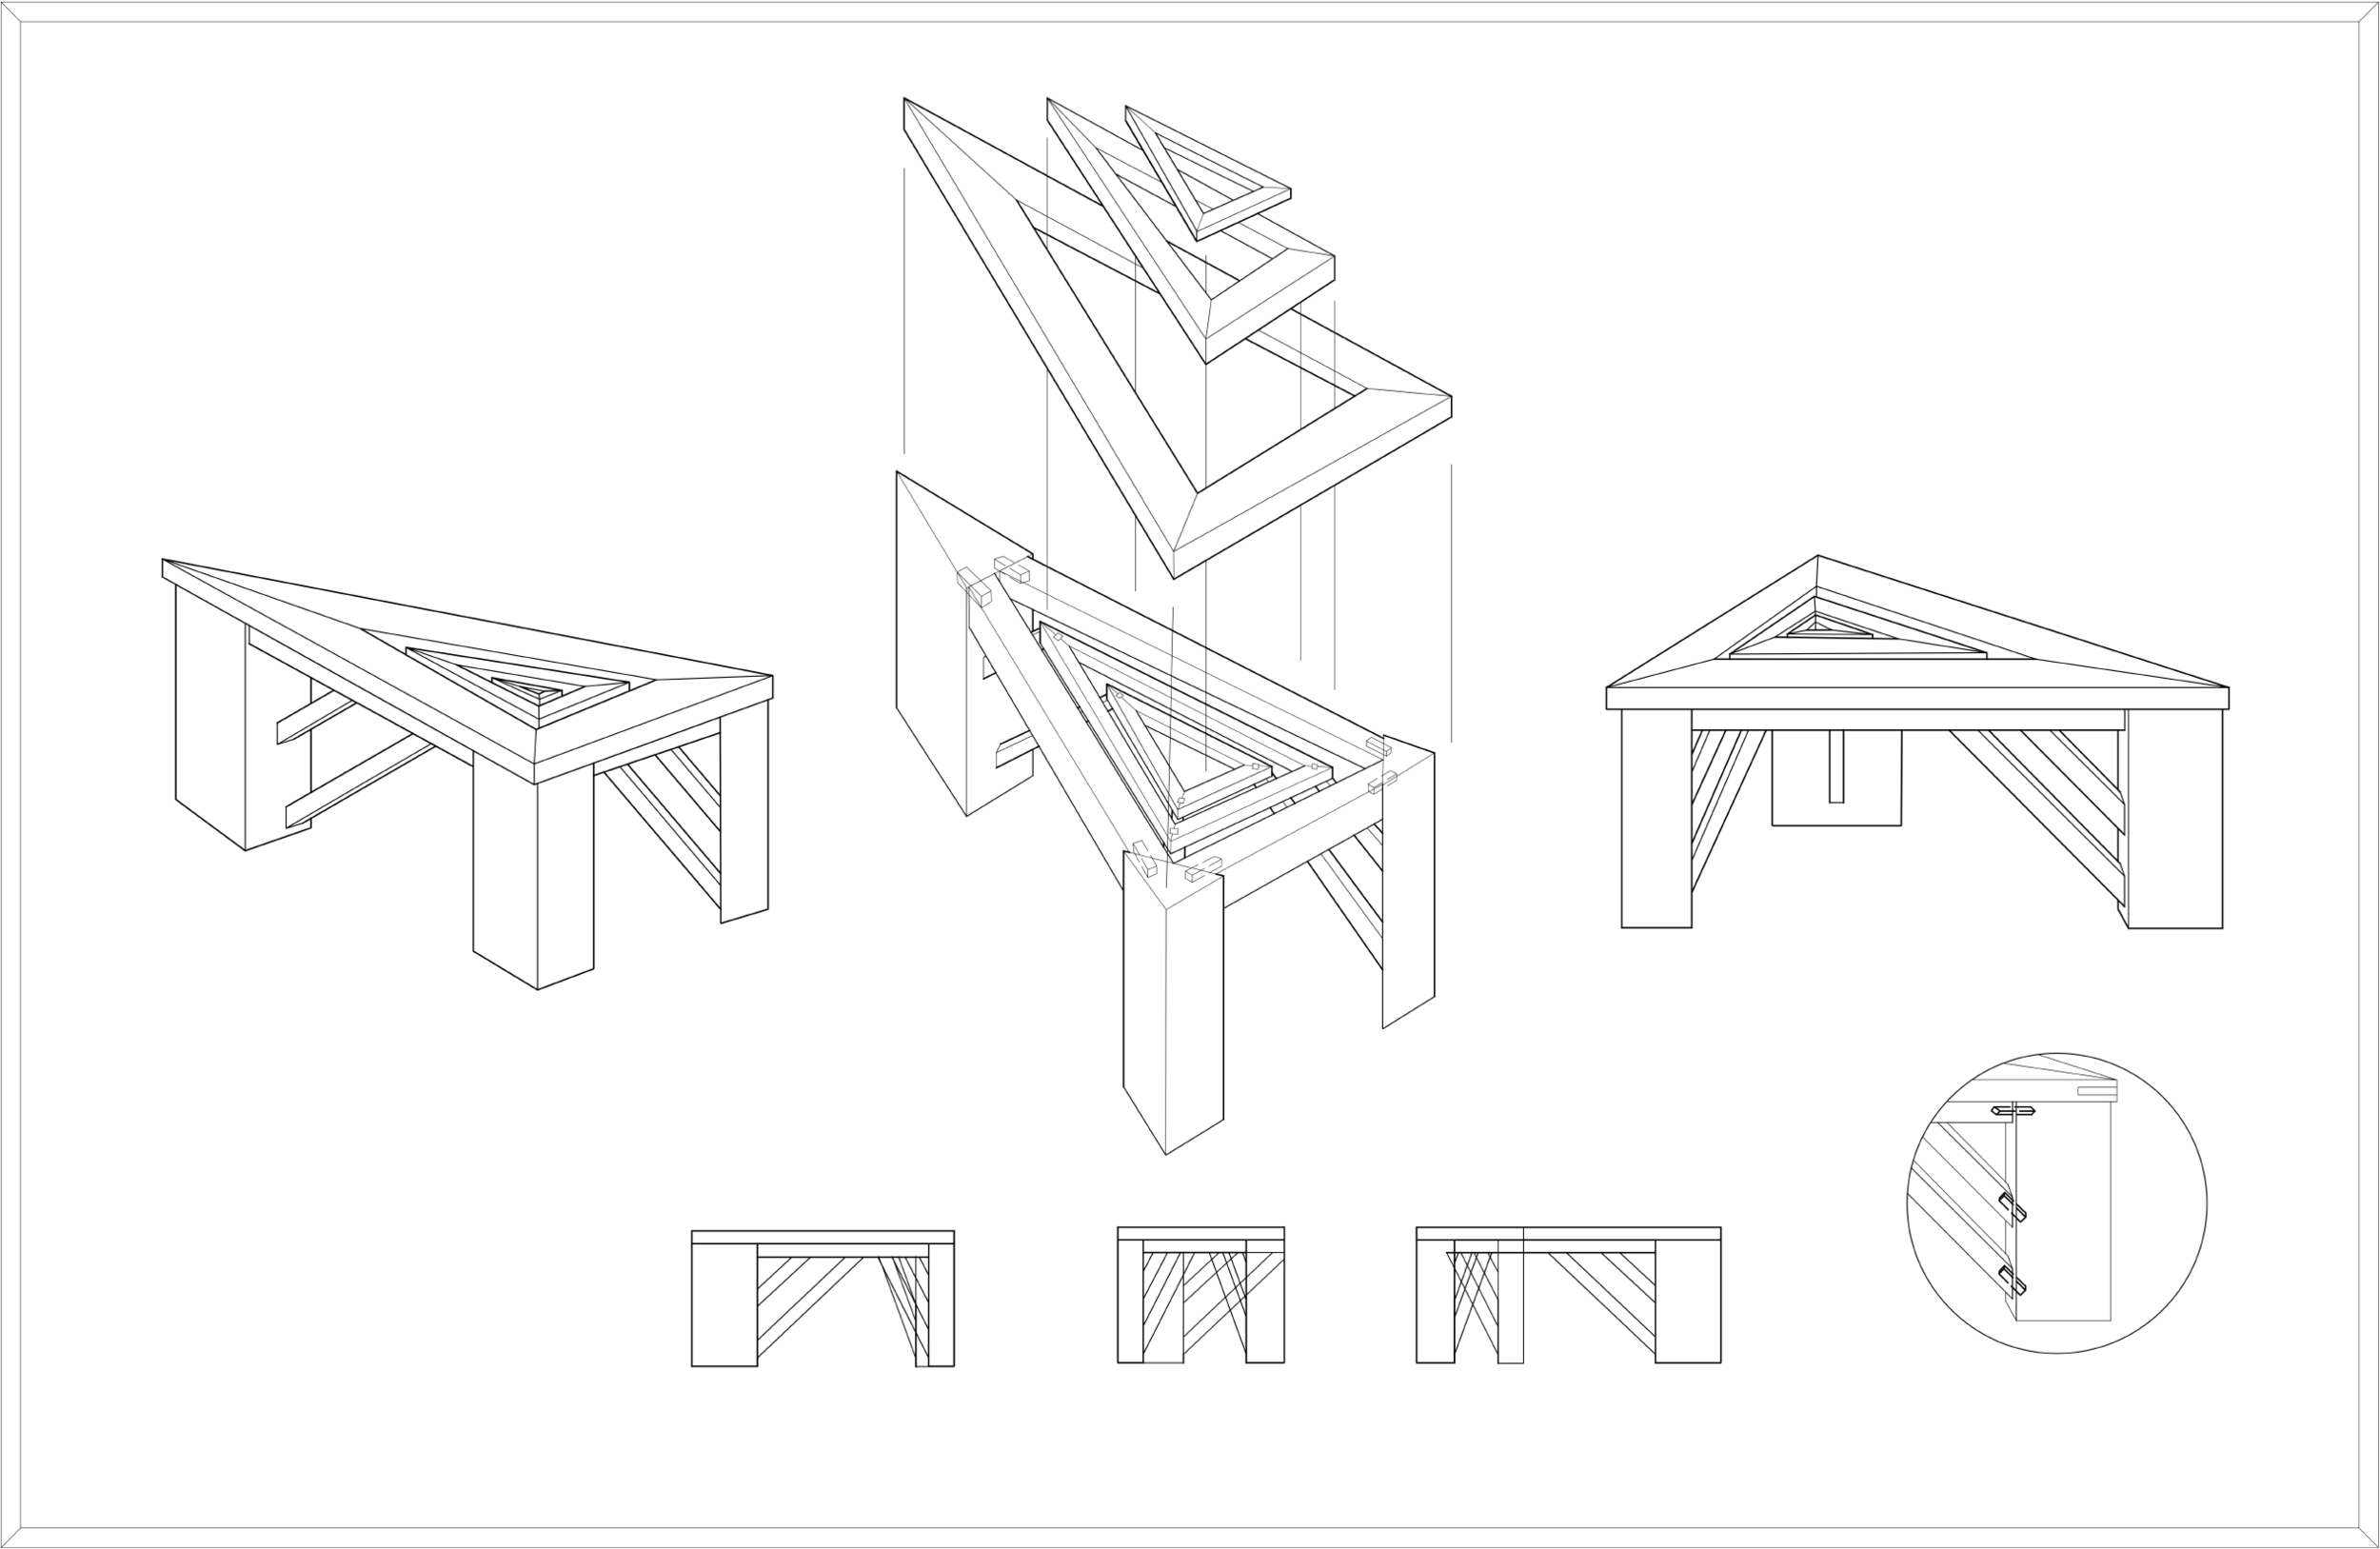 Triangle Table - Drawing created with AutoCAD.